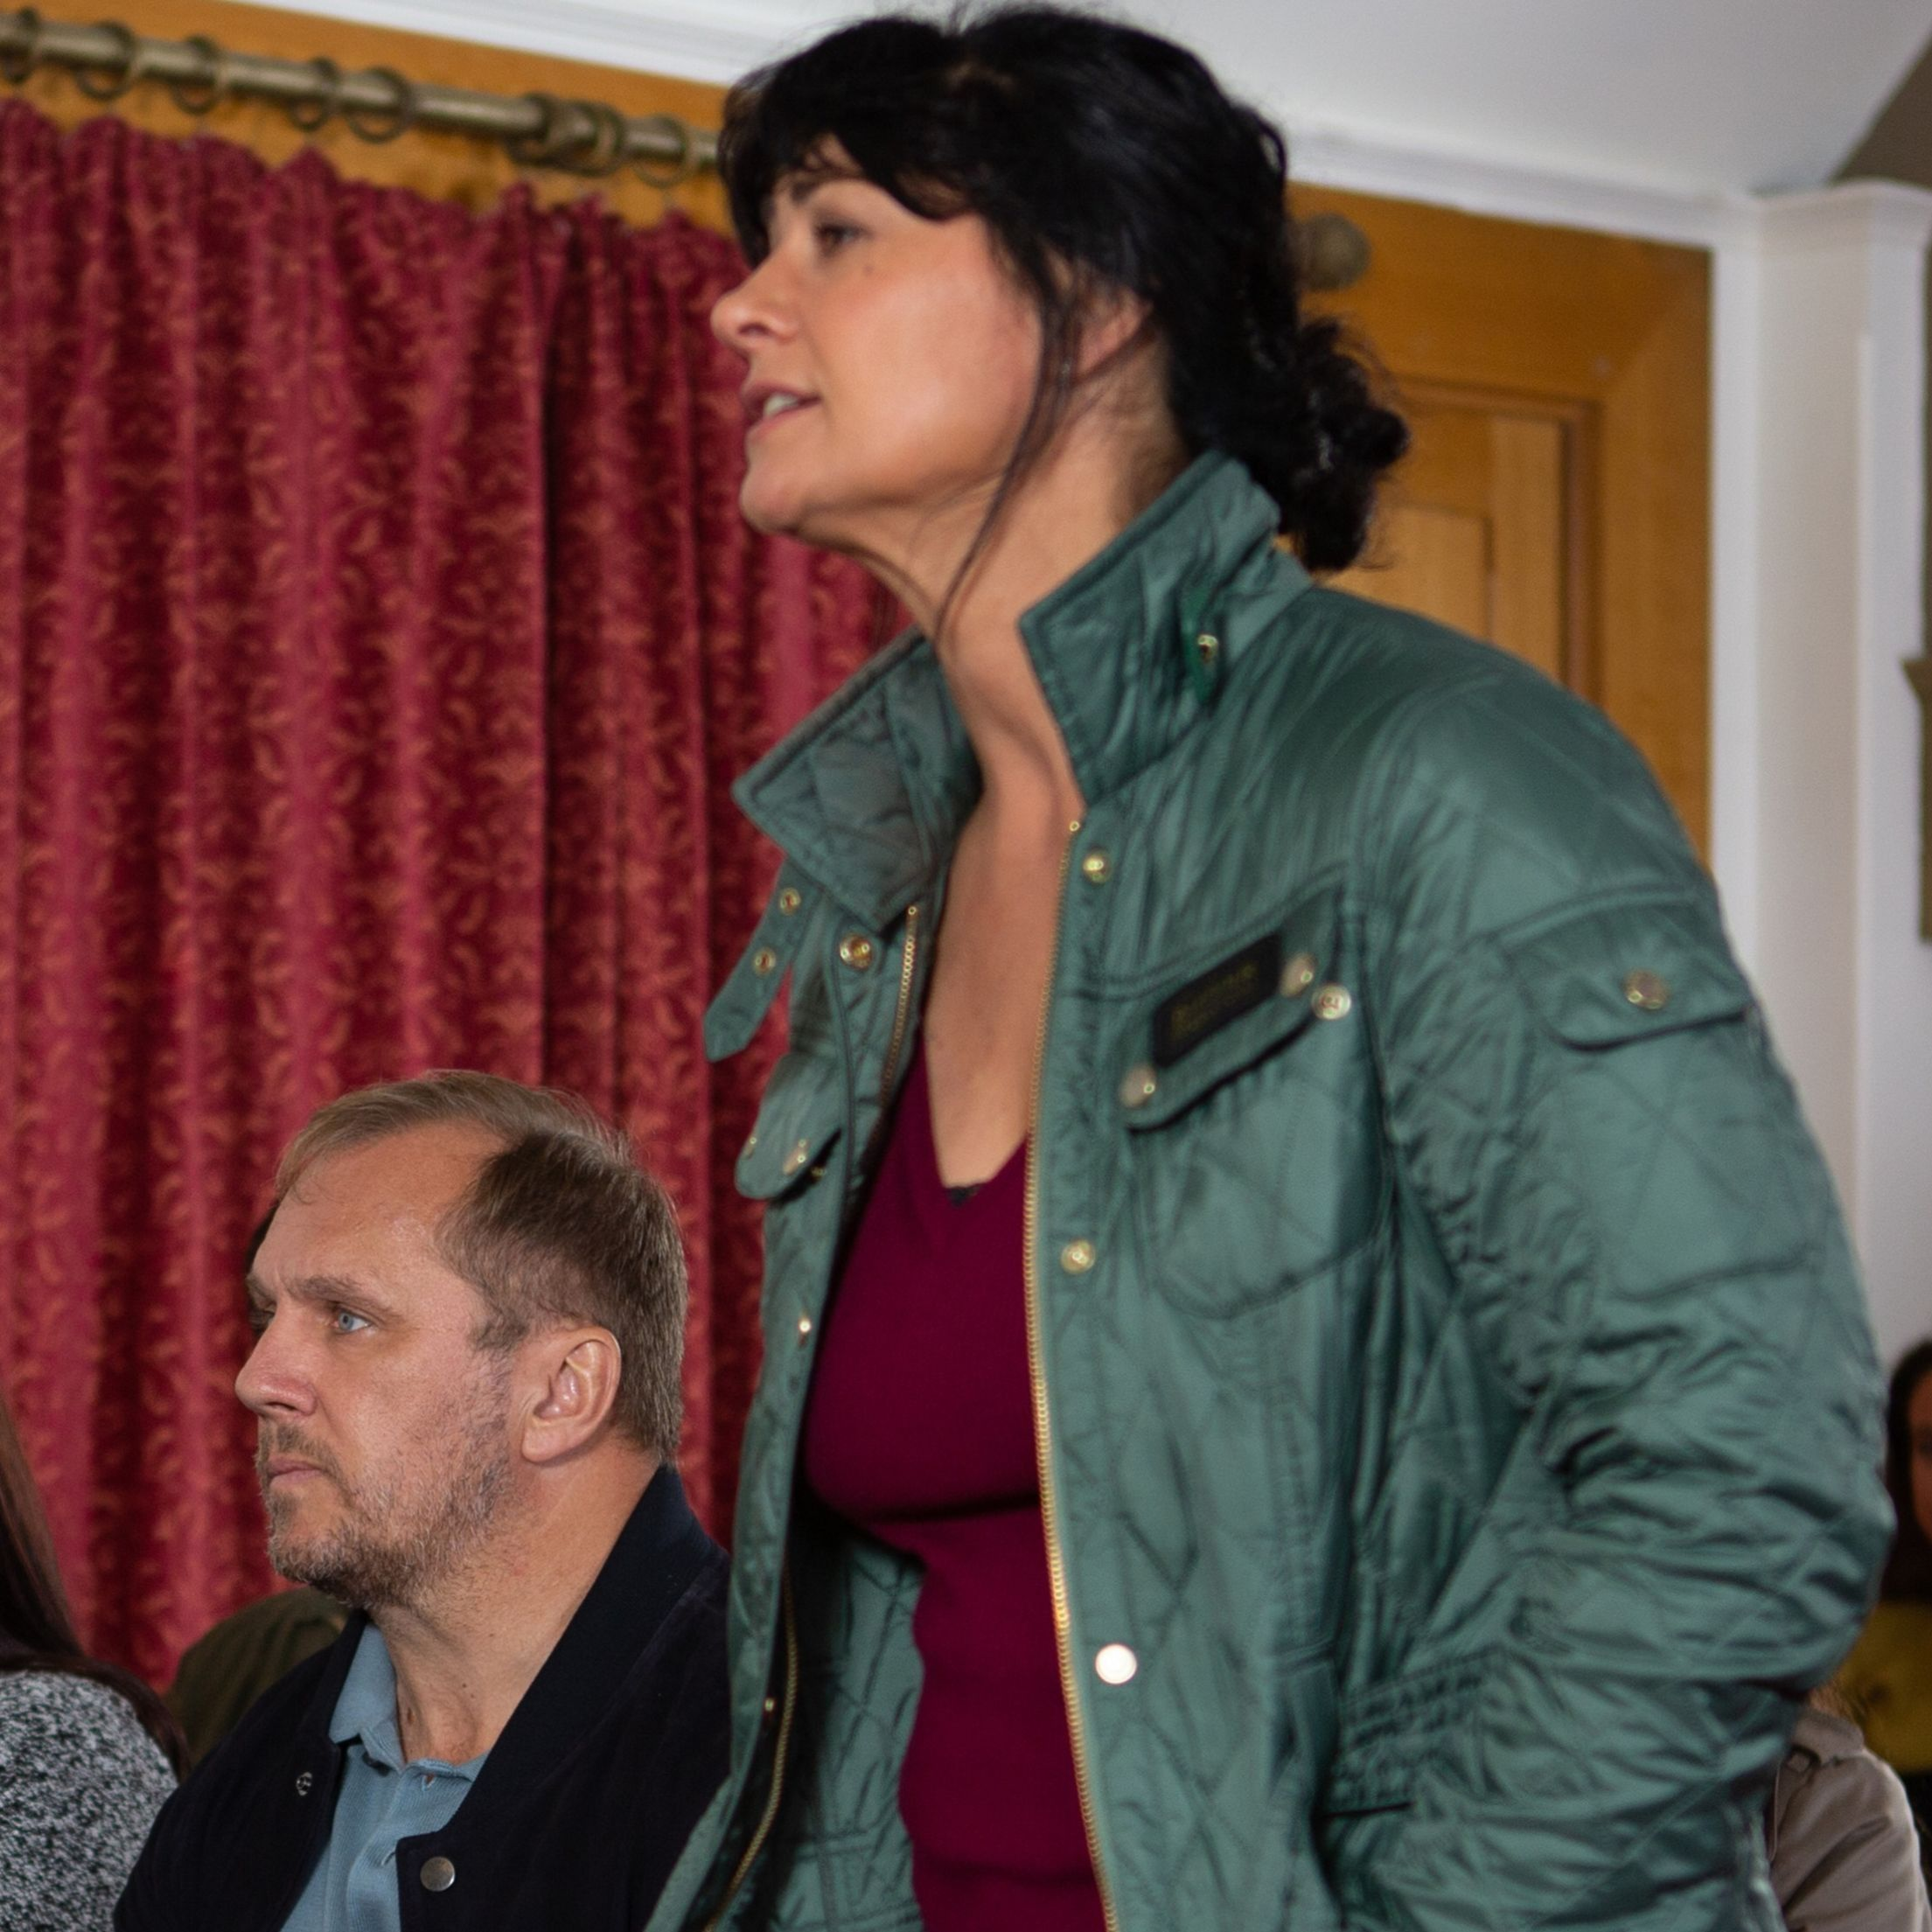 Emmerdale's Moira Dingle takes revenge on Will Taylor in dramatic scenes